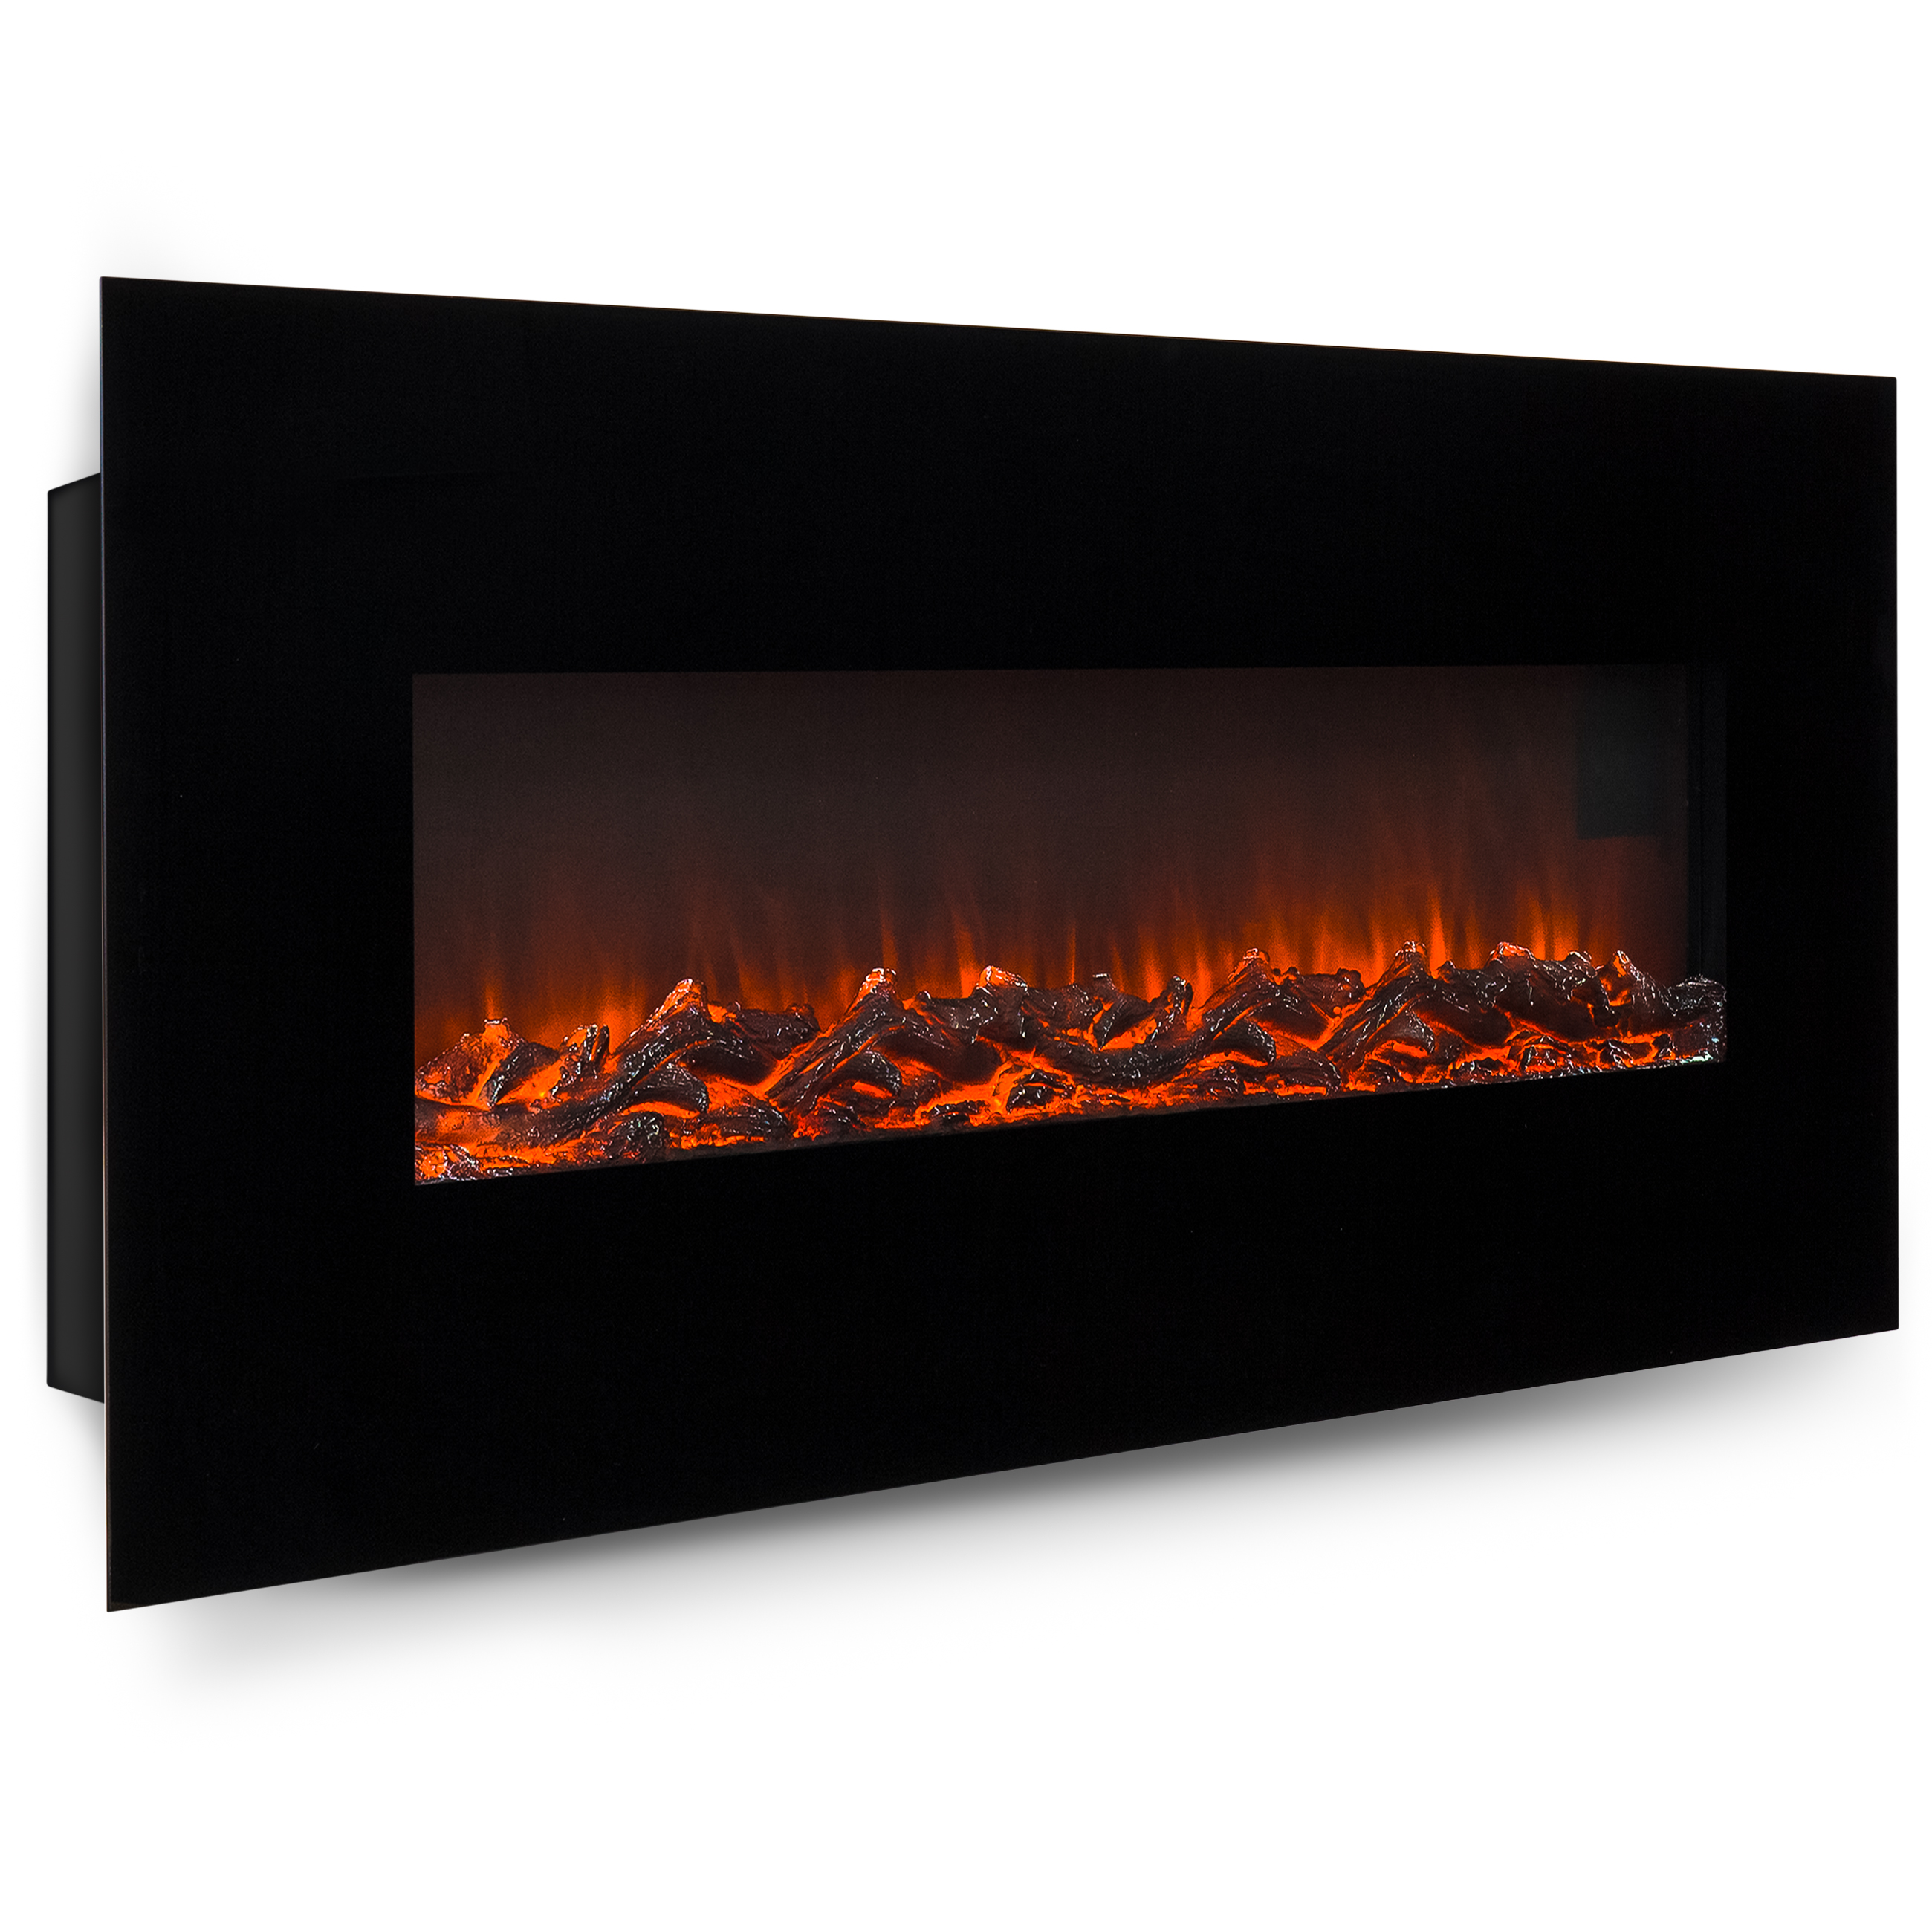 "Best Choice Products 50"" Electric Wall Mounted Fireplace Heater w/ Adjustable Heating"